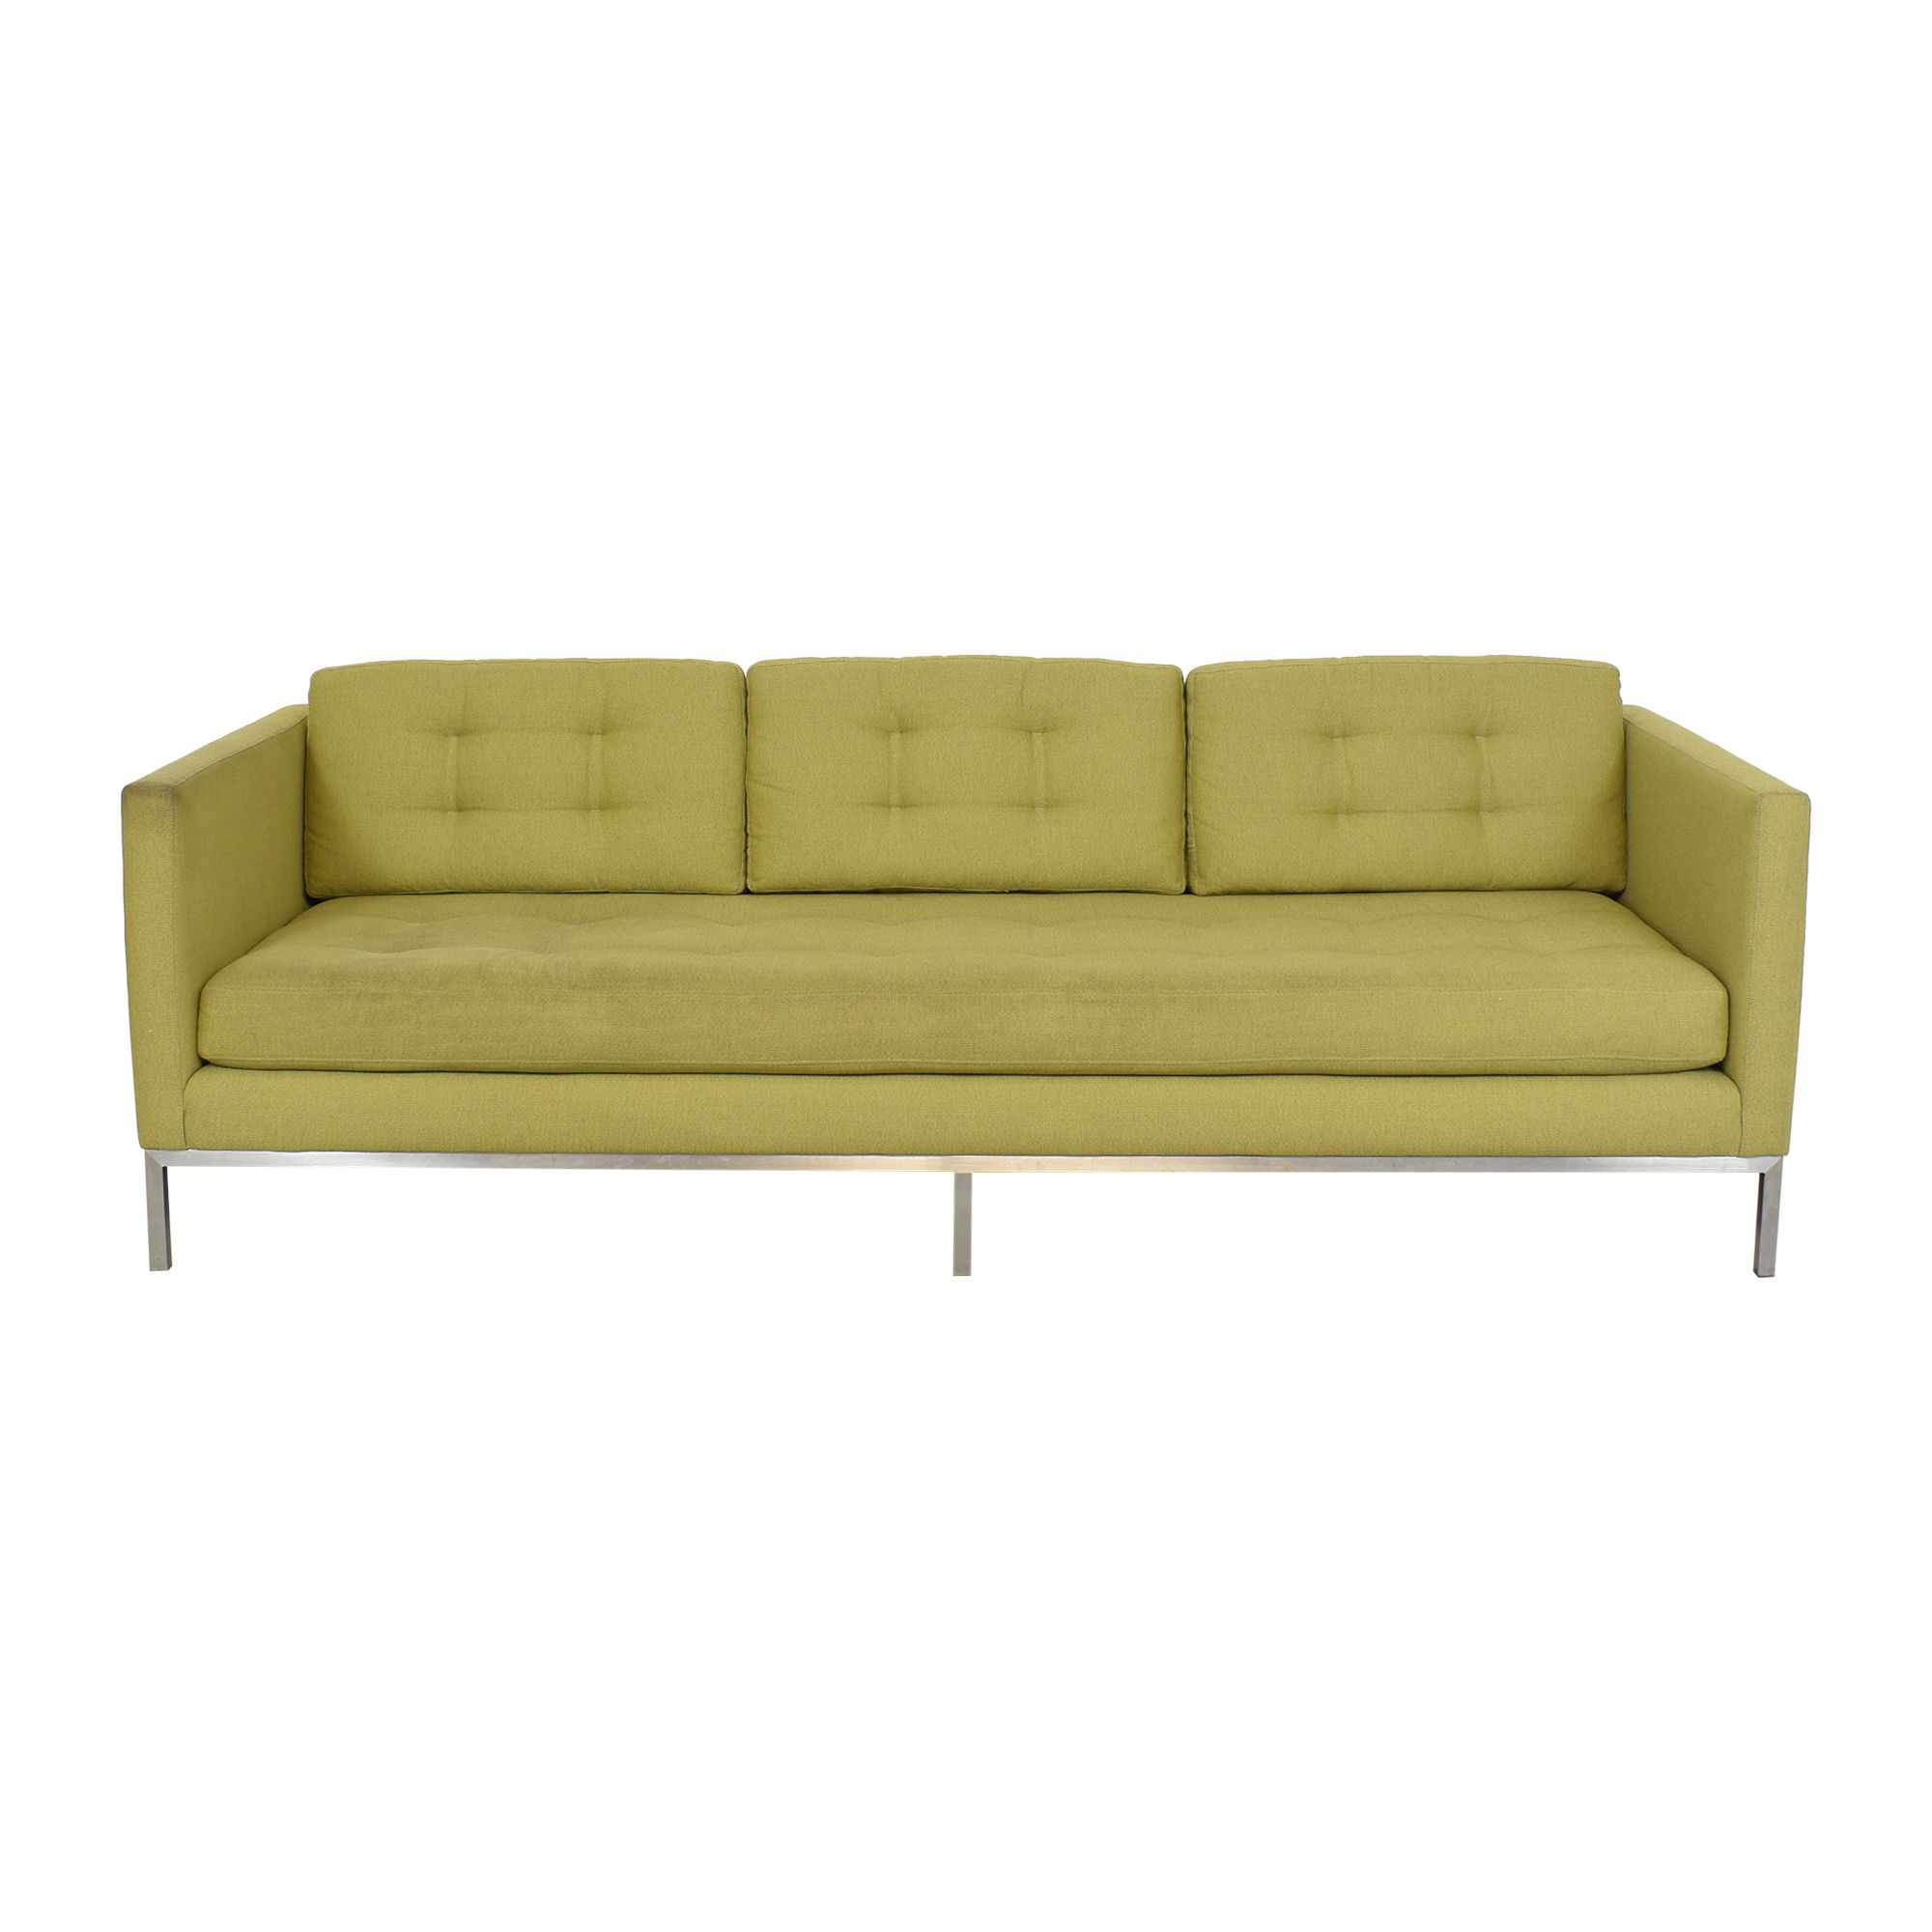 Room & Board Room & Board Mid Century Modern Sofa for sale